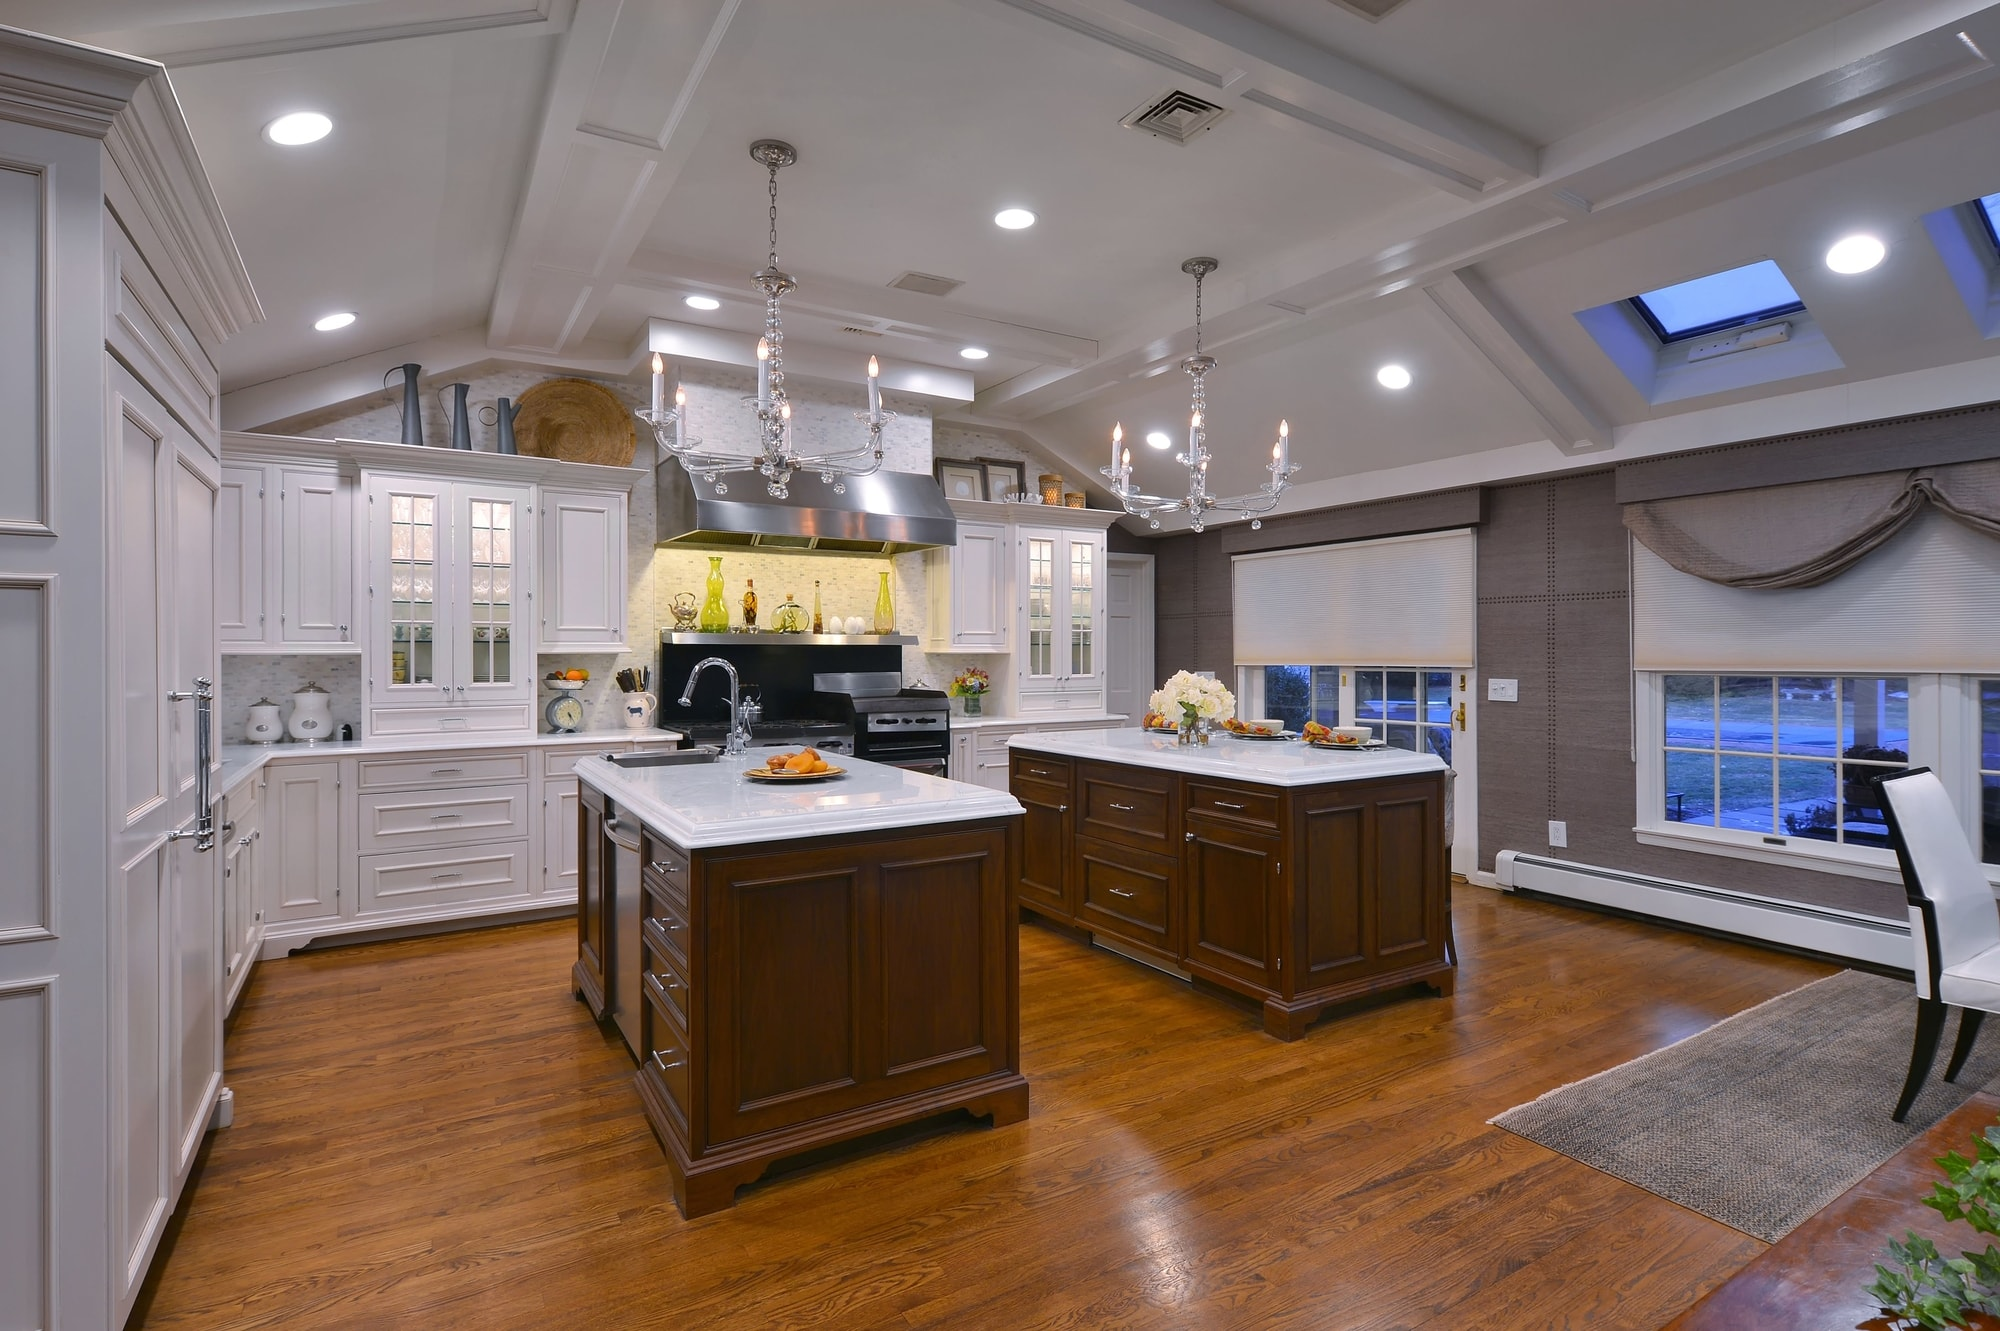 Traditional style kitchen with open space design